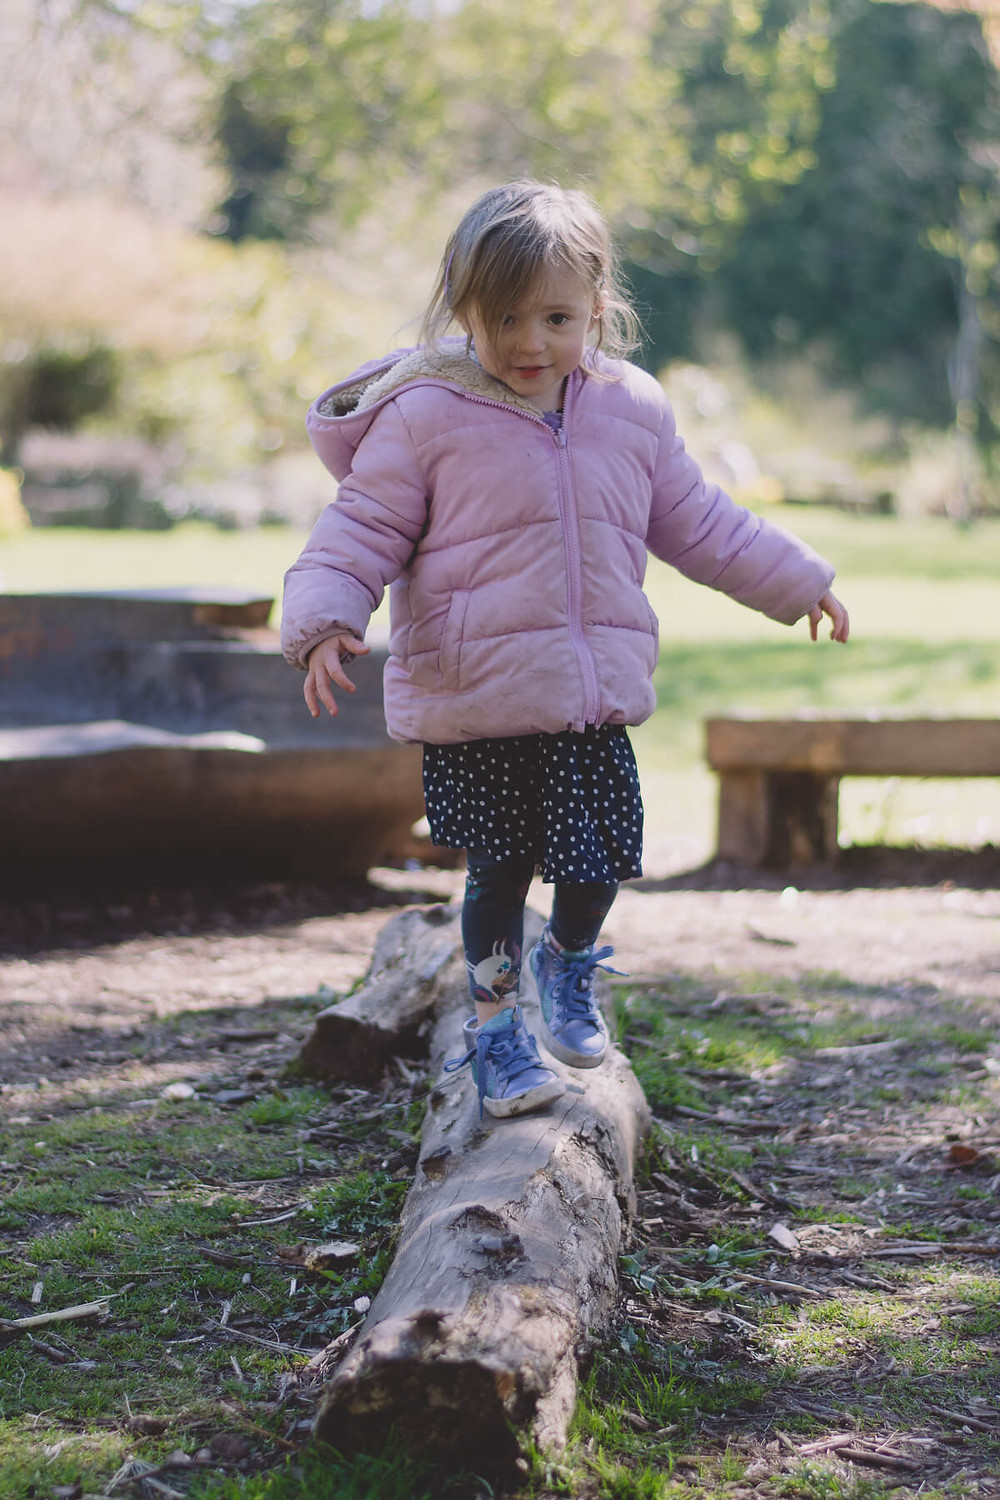 young girl pink coat playing in park balancing on log